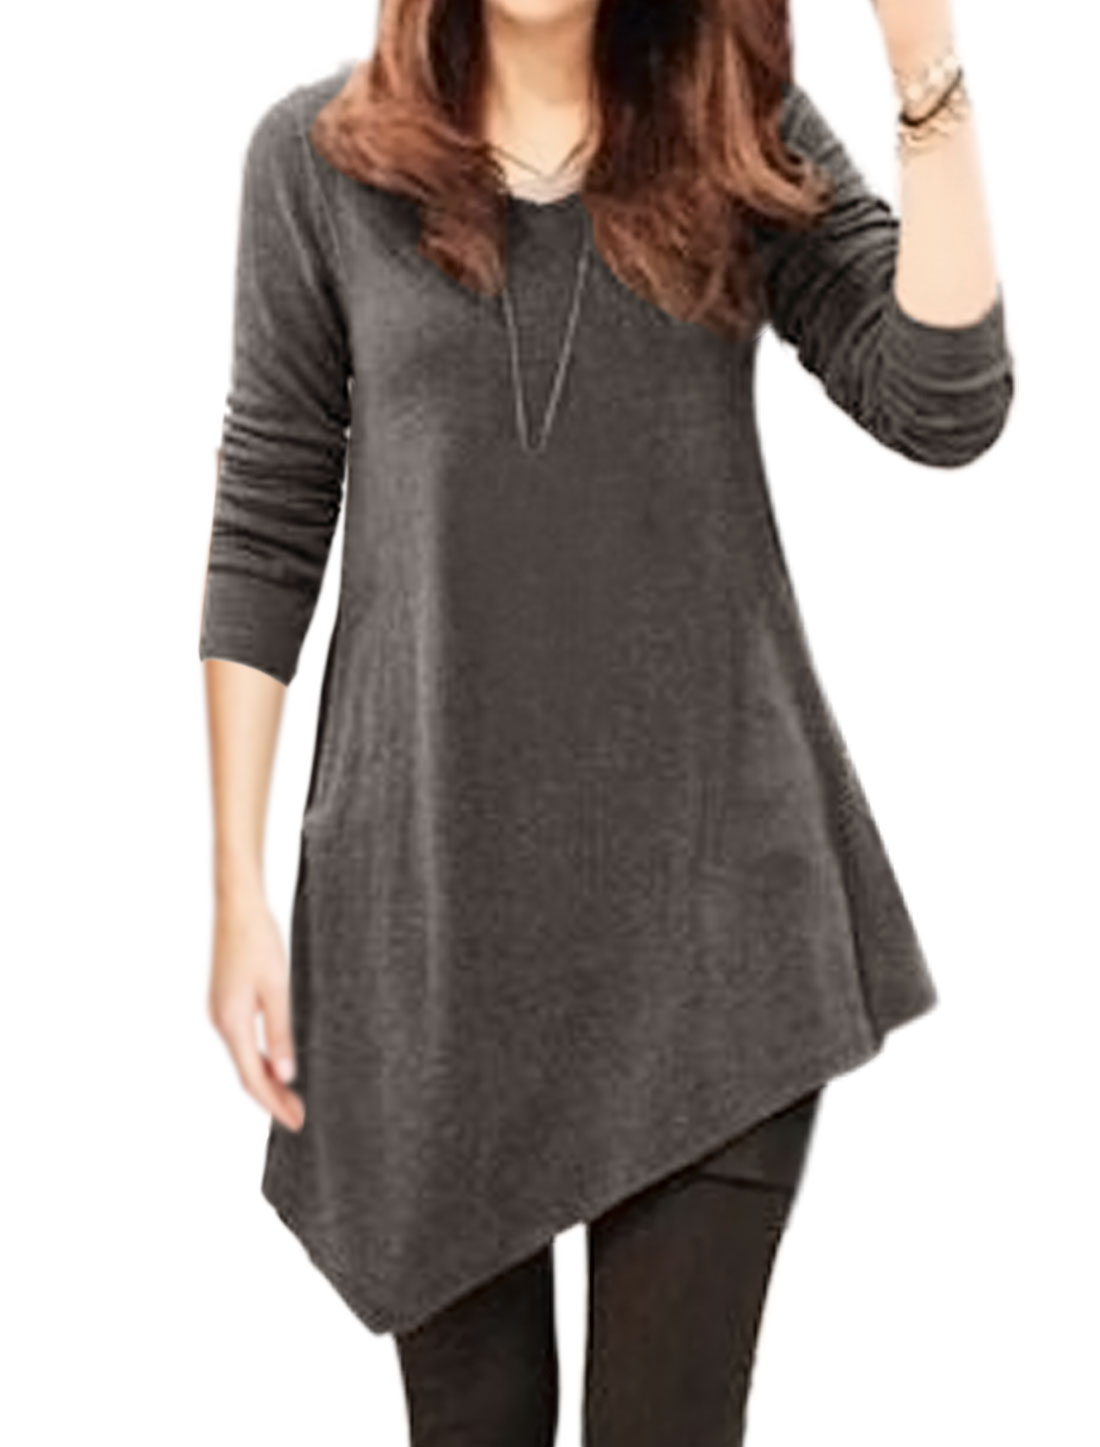 Women V Neck Long Sleeves Casual Asymmetric Hem Loose Tunic Top Gray M